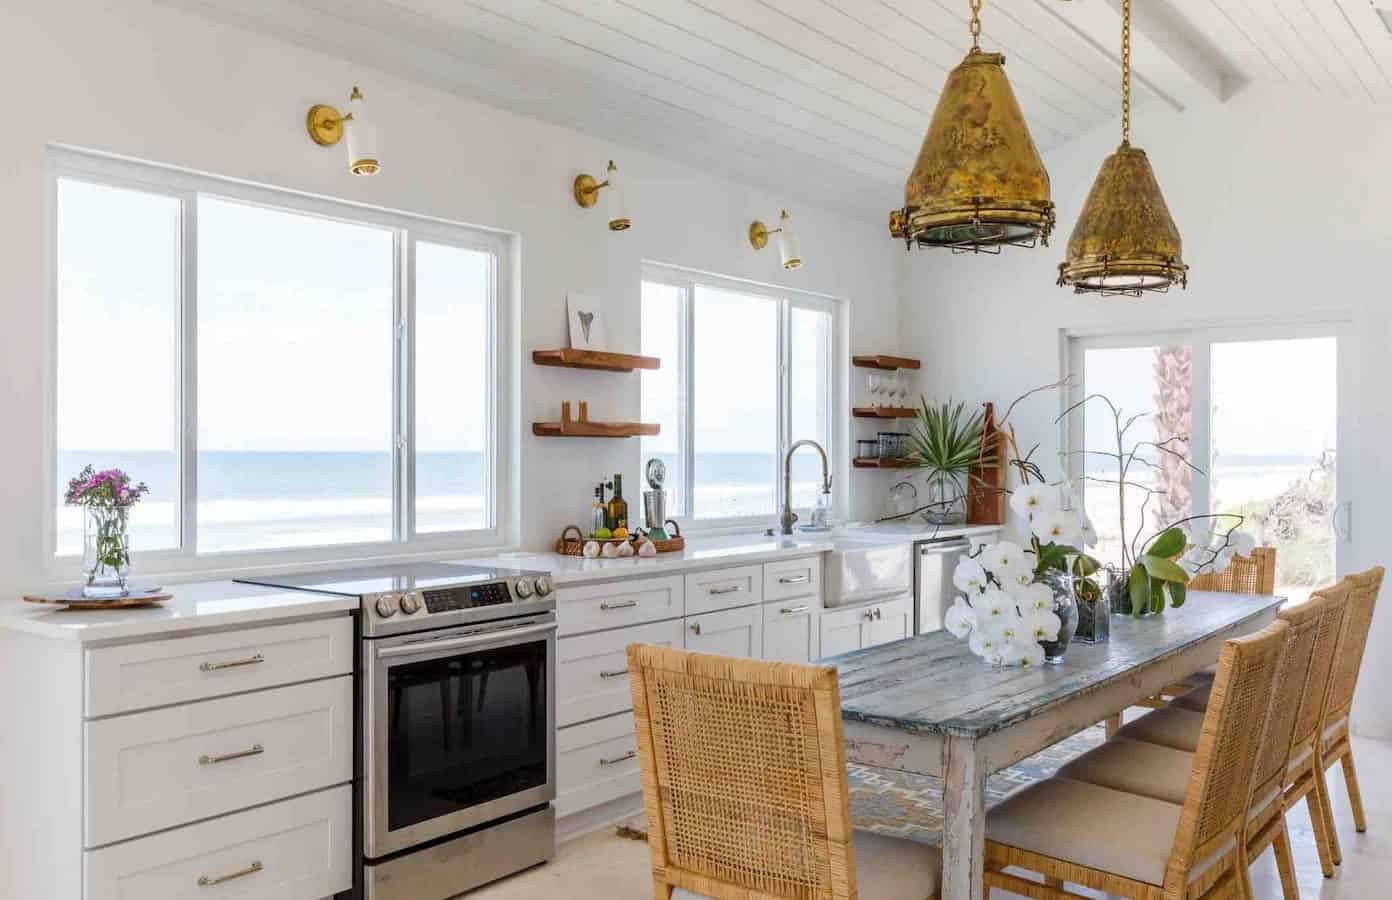 Beautiful interior of one of the cottages in Florida located on beachfront.